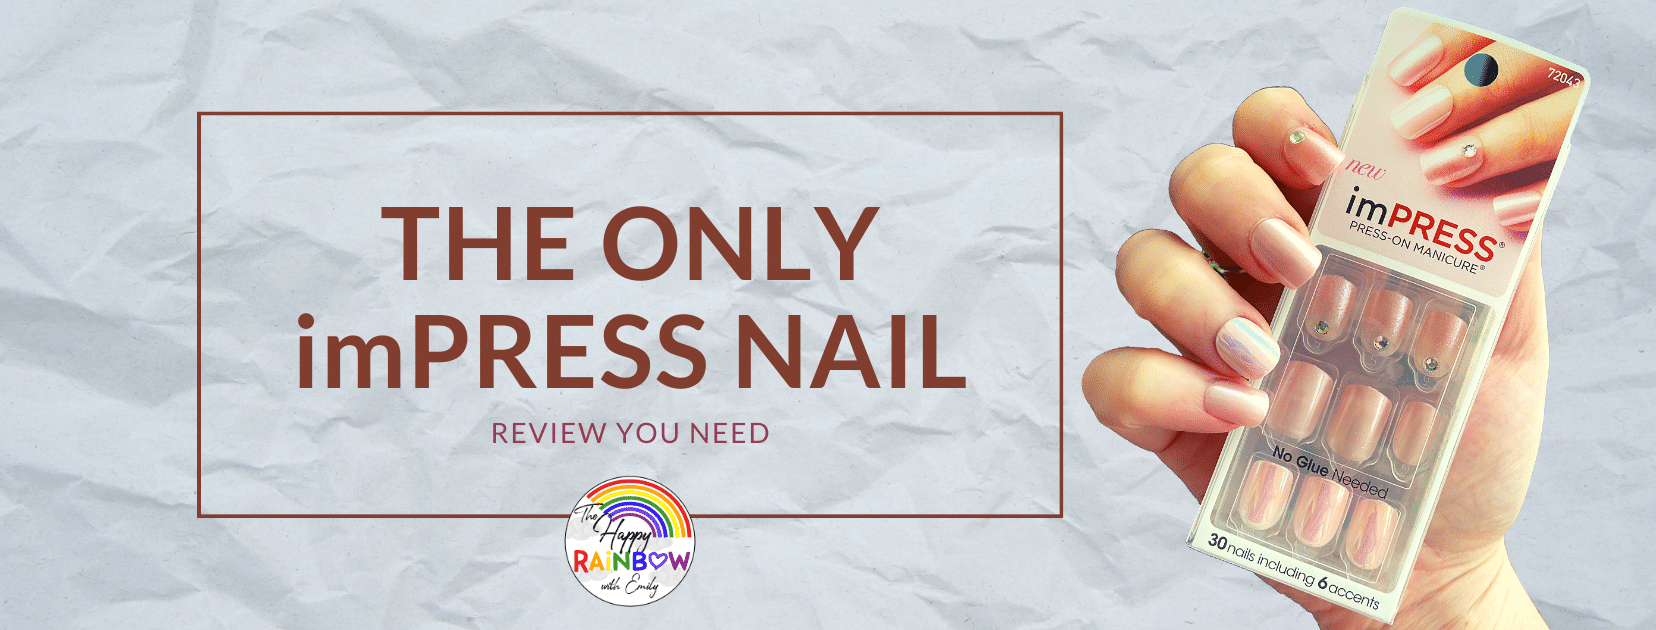 Title photo for the imPRESS nail review article